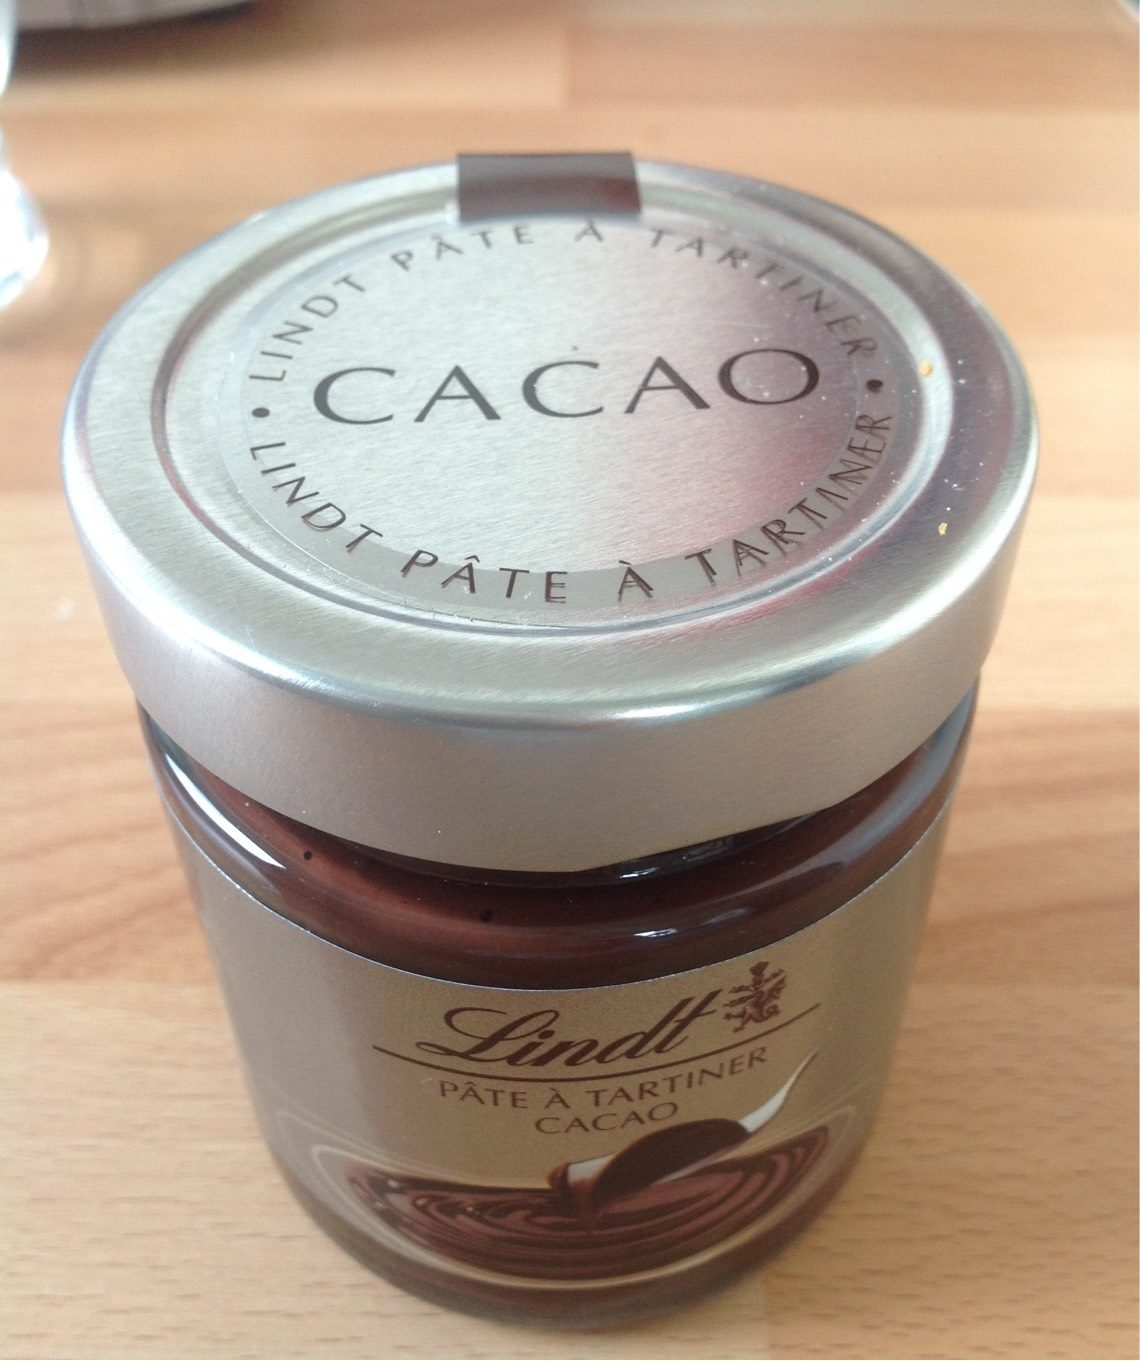 Pate a tartiner cacao - Product - fr